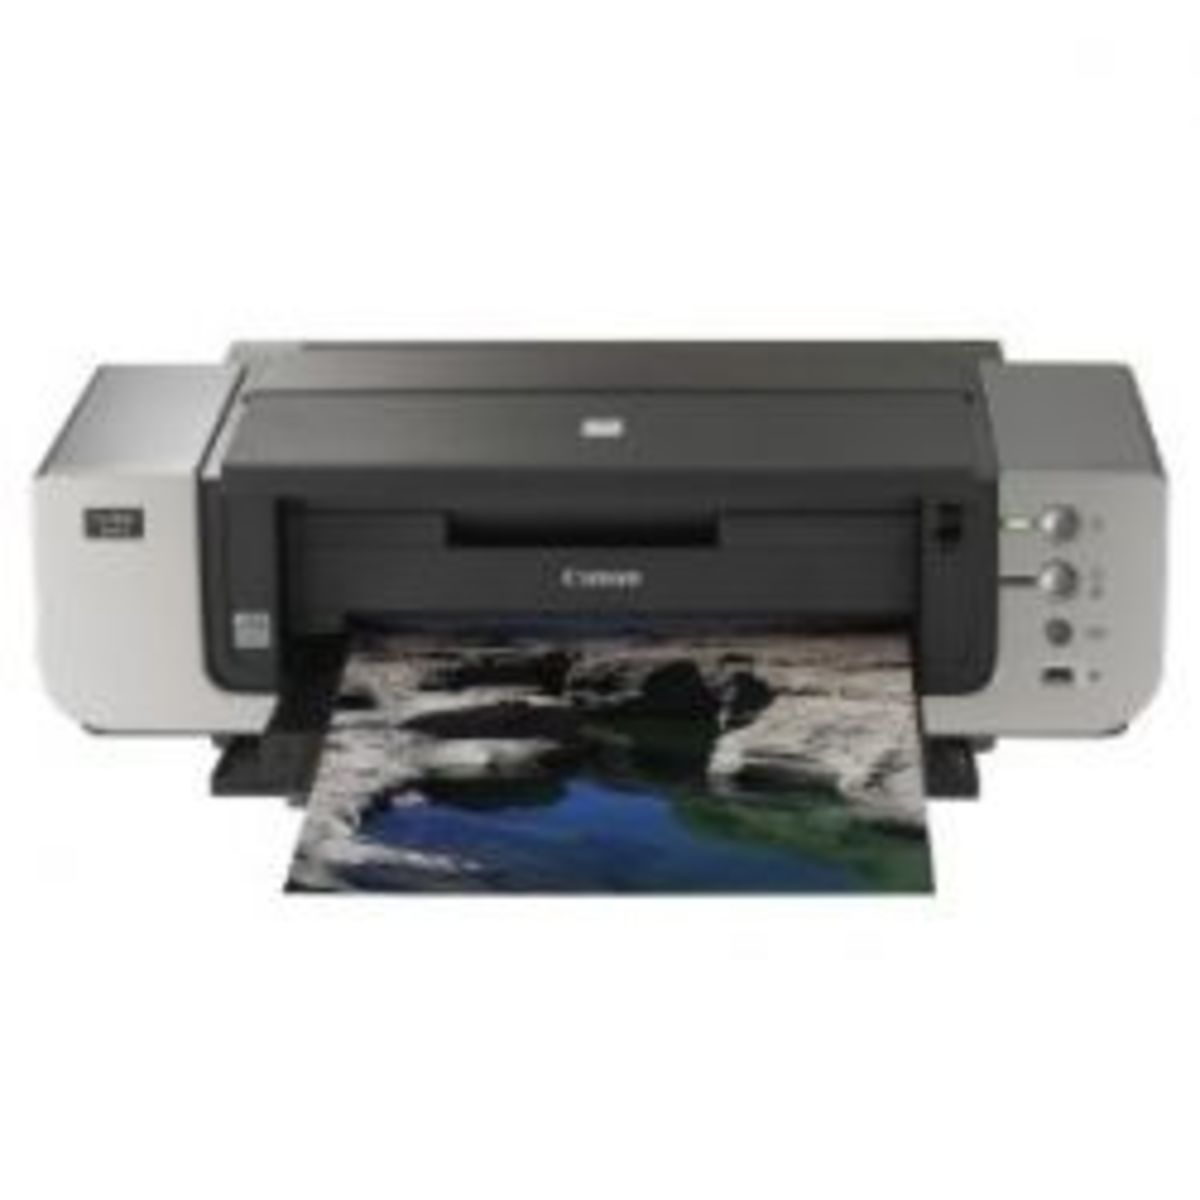 The Canon Pixma Pro 9000 Mark II Inkjet Printer